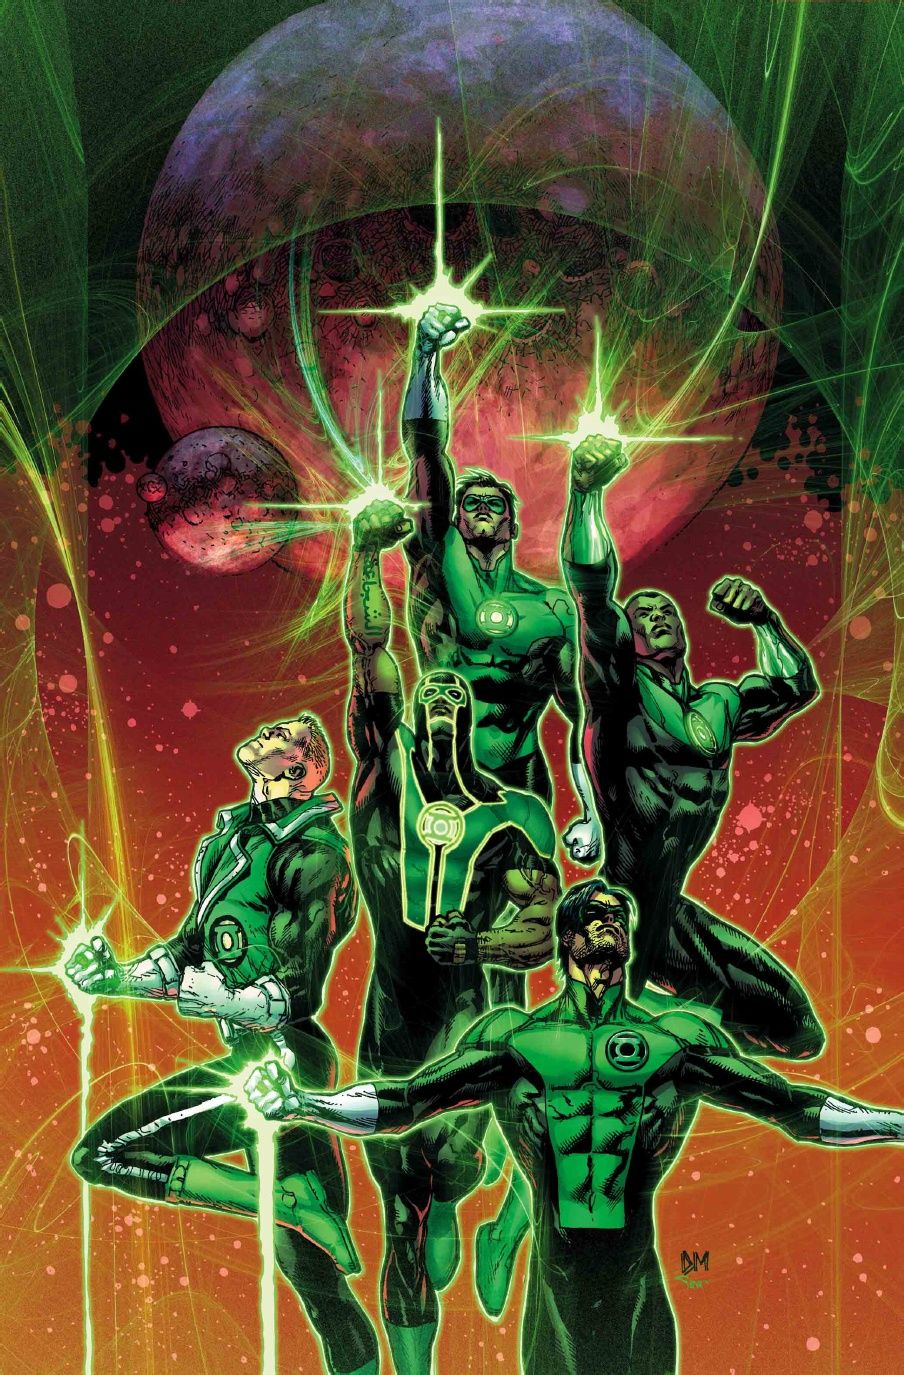 904x1375 Green Lanterns Wallpaper I use (Phone) - Imgur